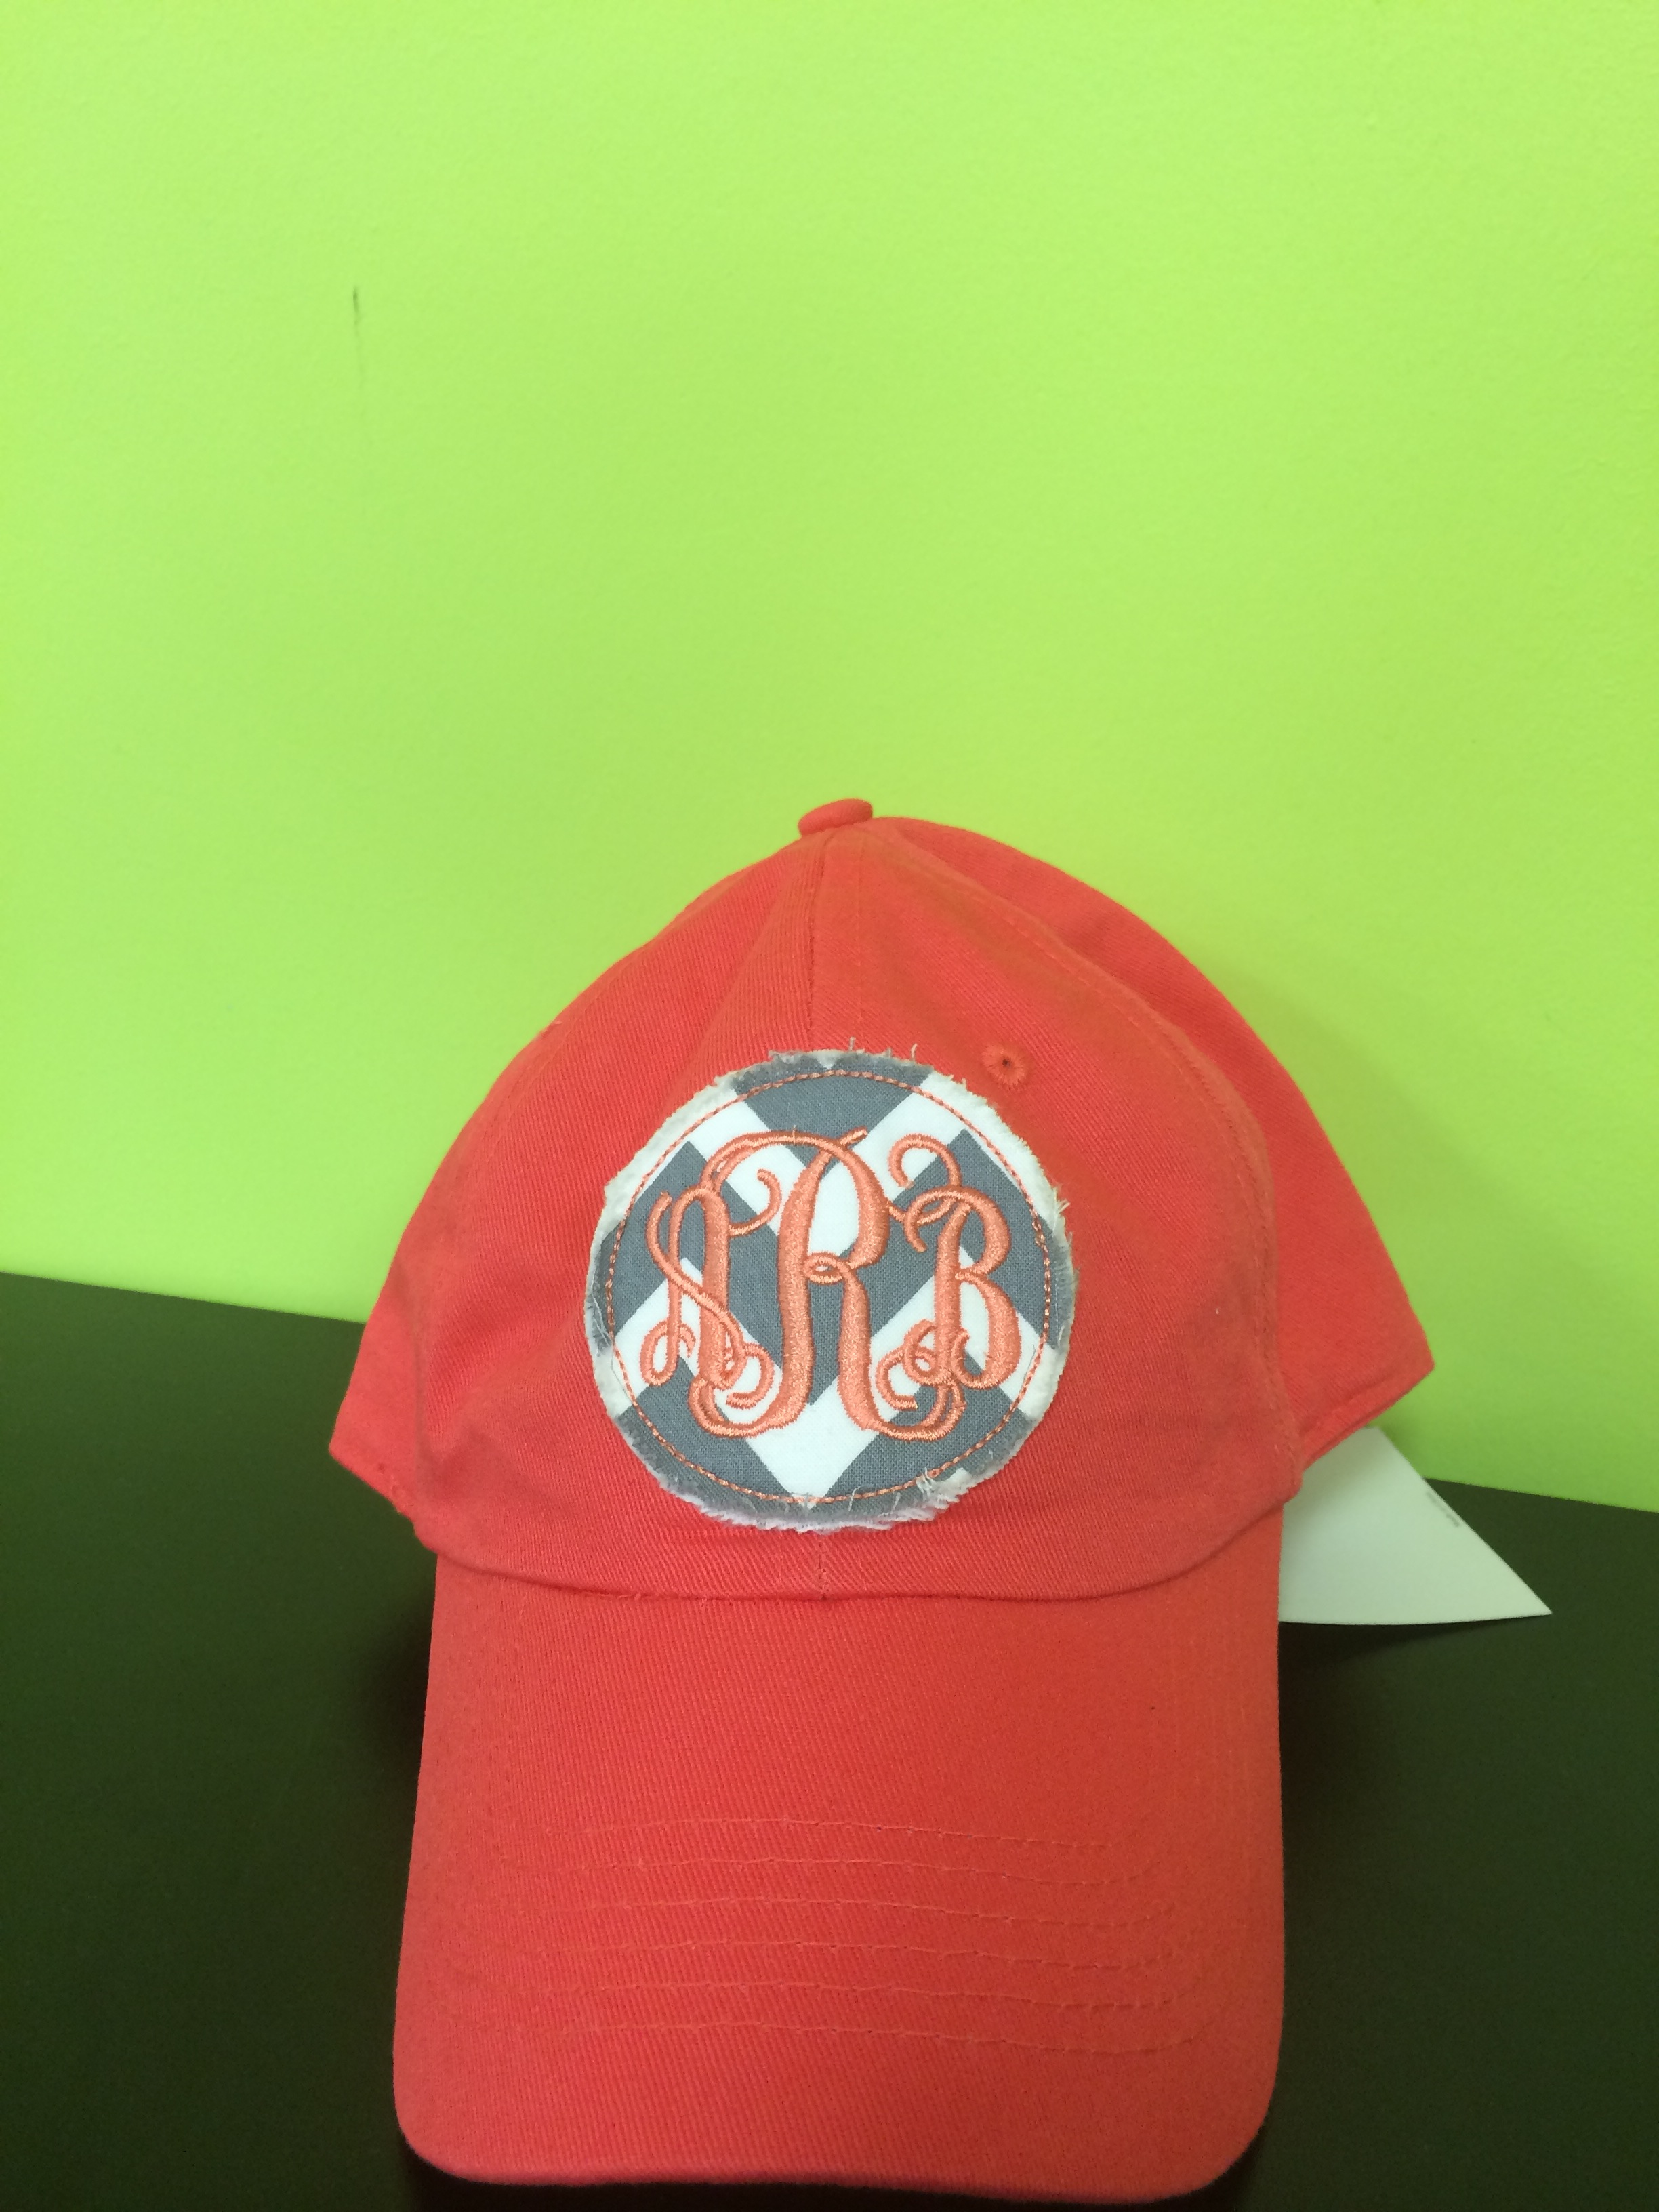 Chevron Applique Monogrammed Hat